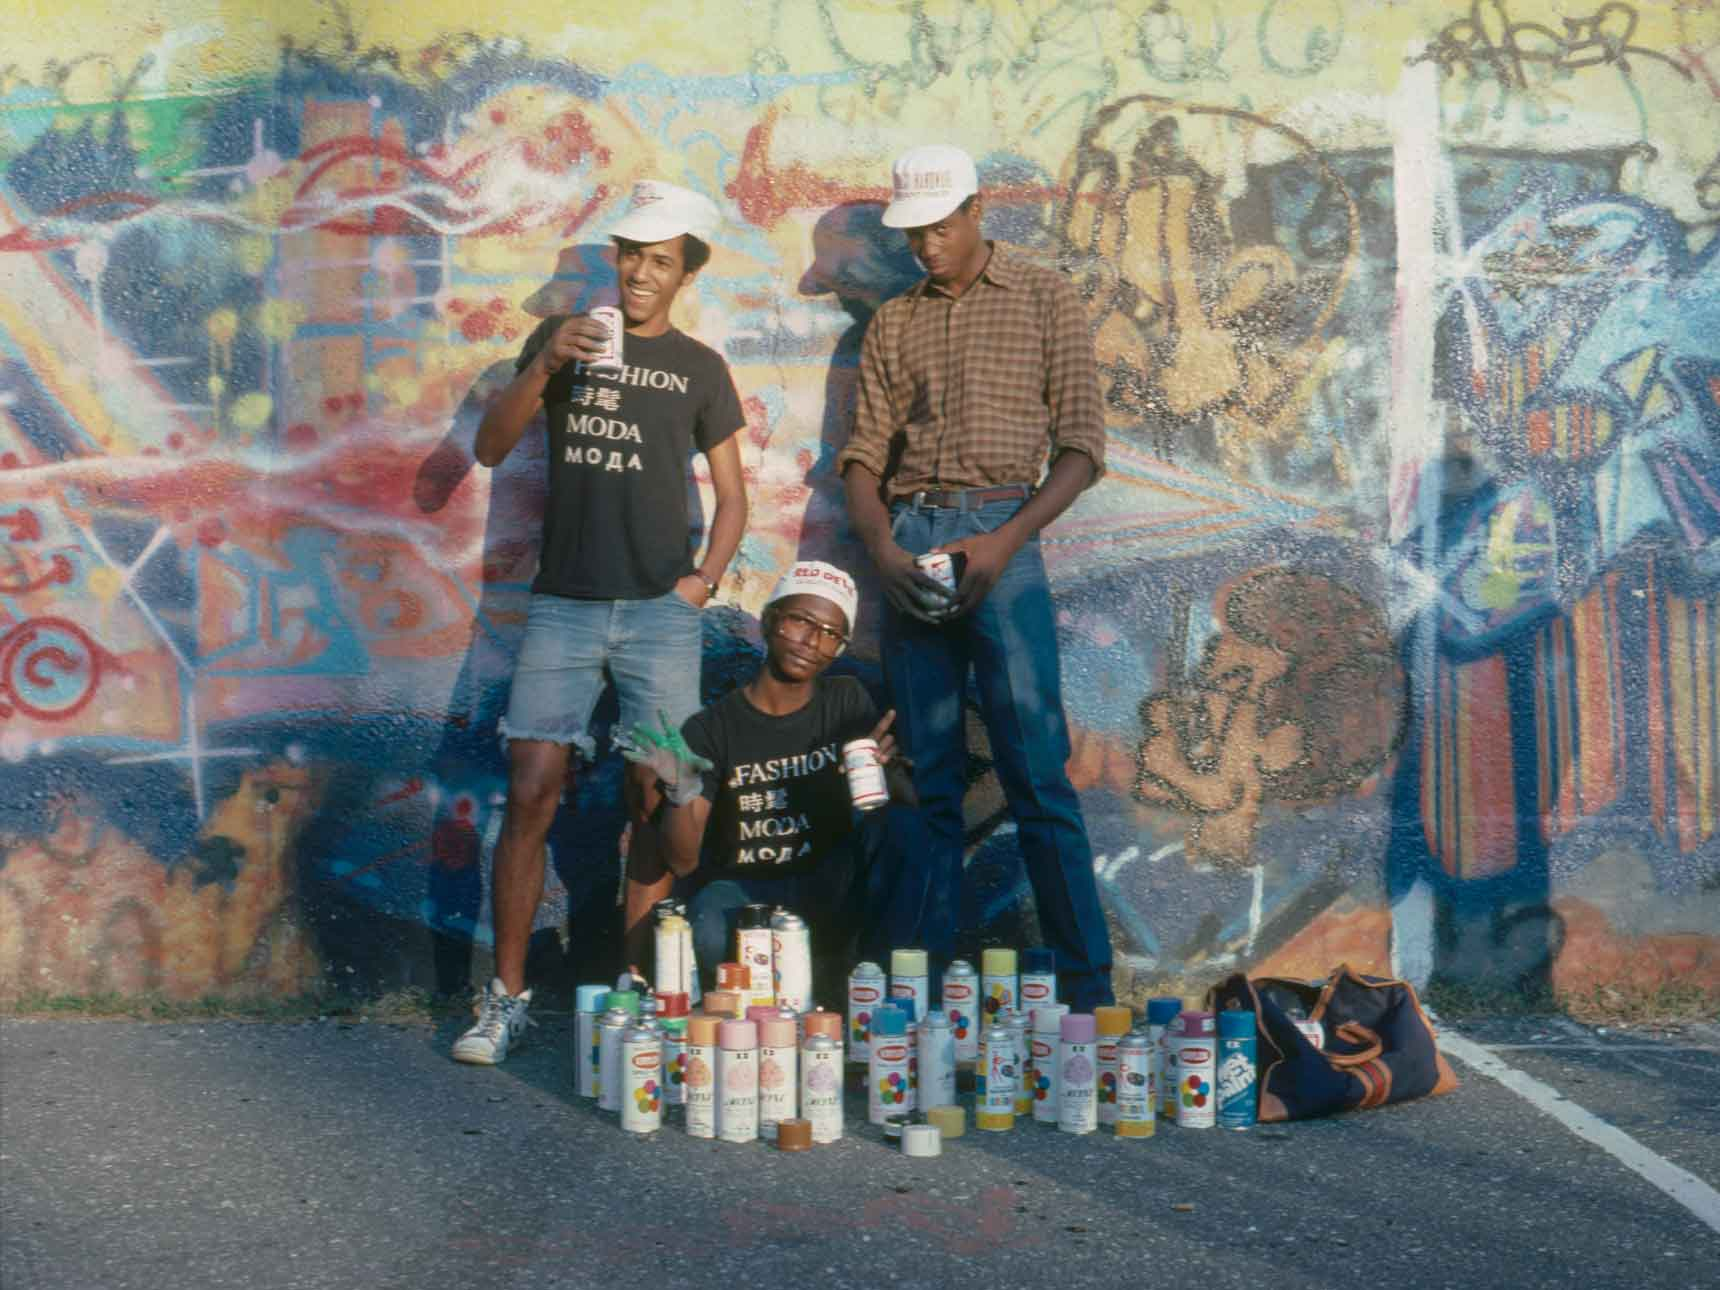 three artists with spray paint posing in front of graffiti-covered wall